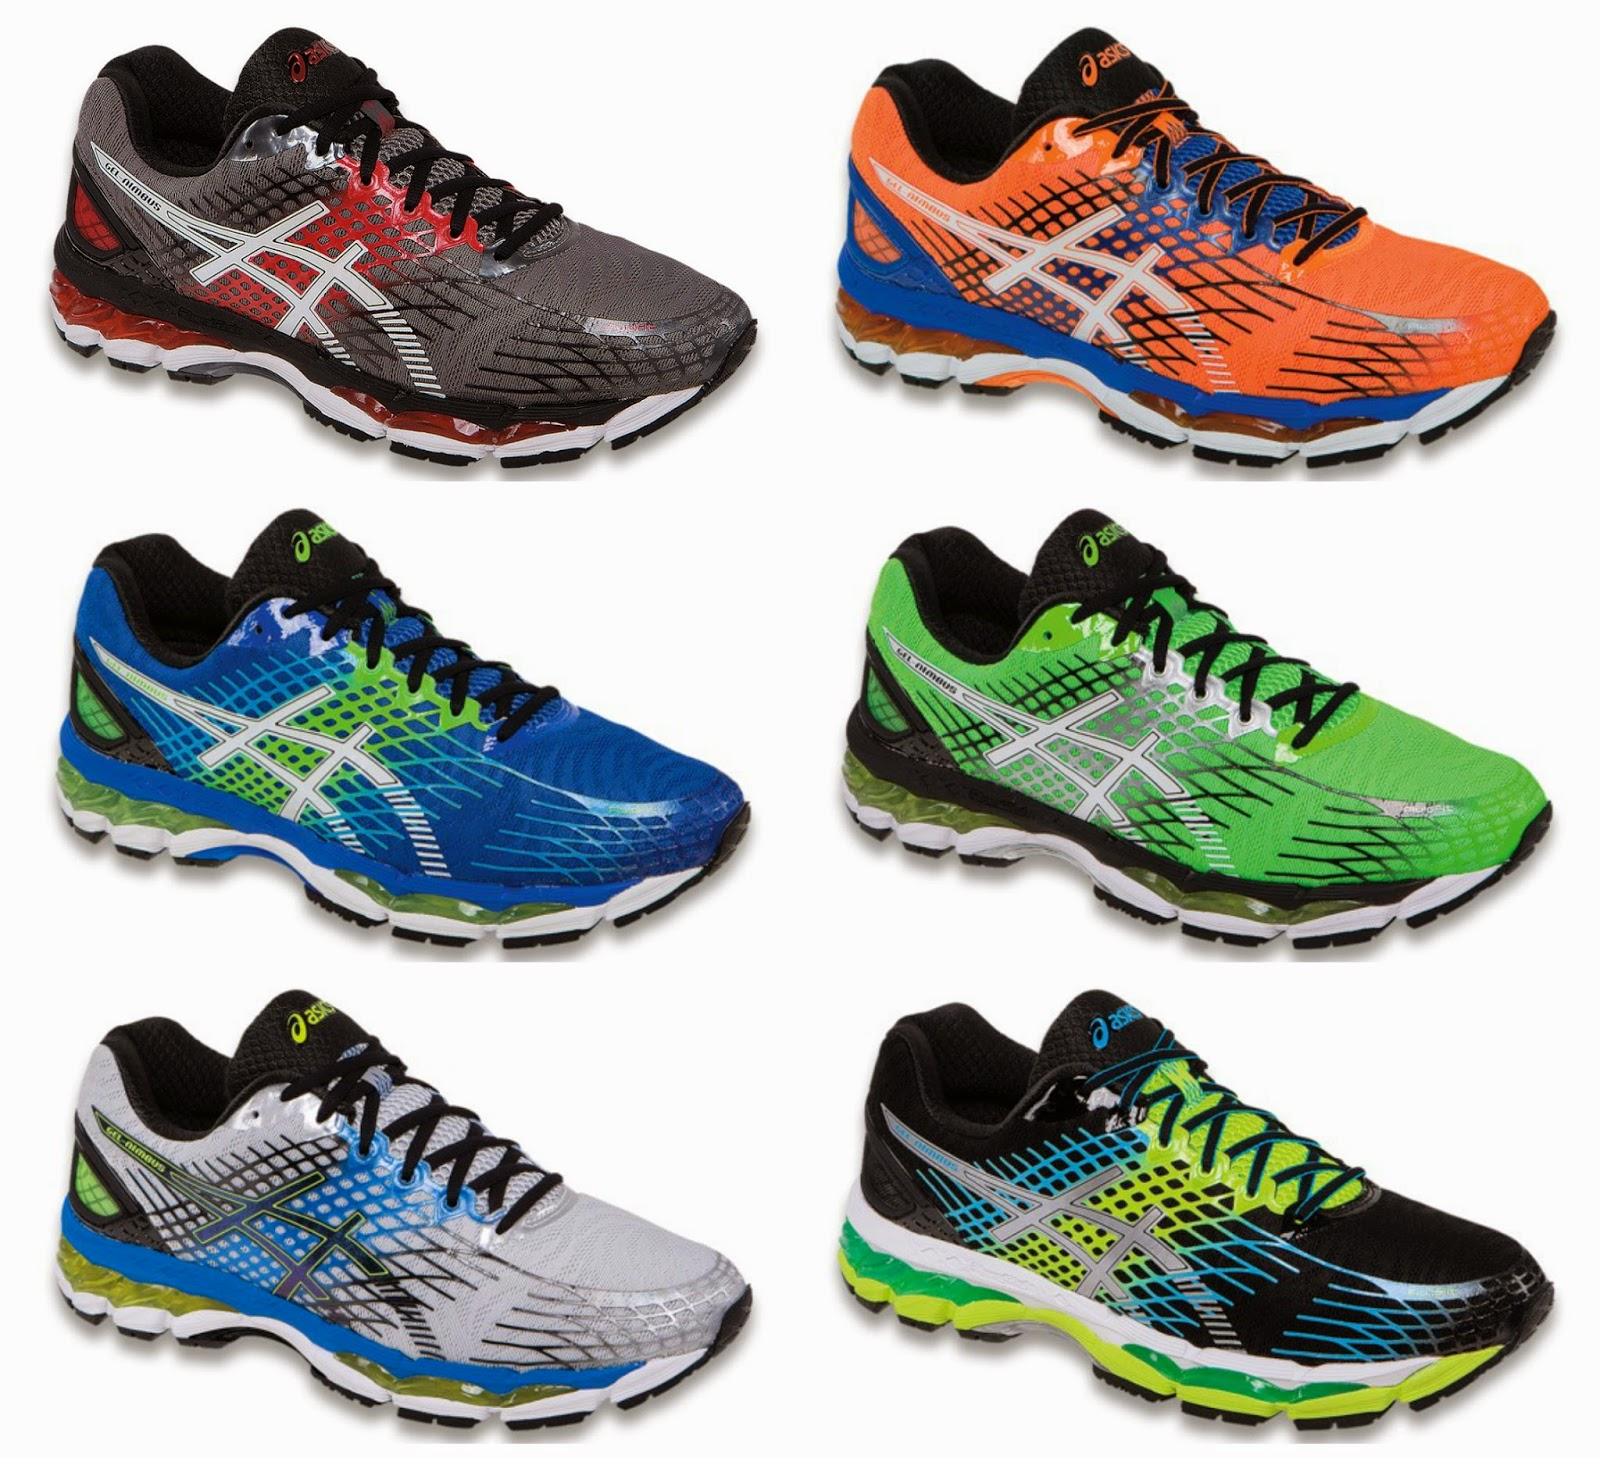 asics running shoes gel nimbus 17